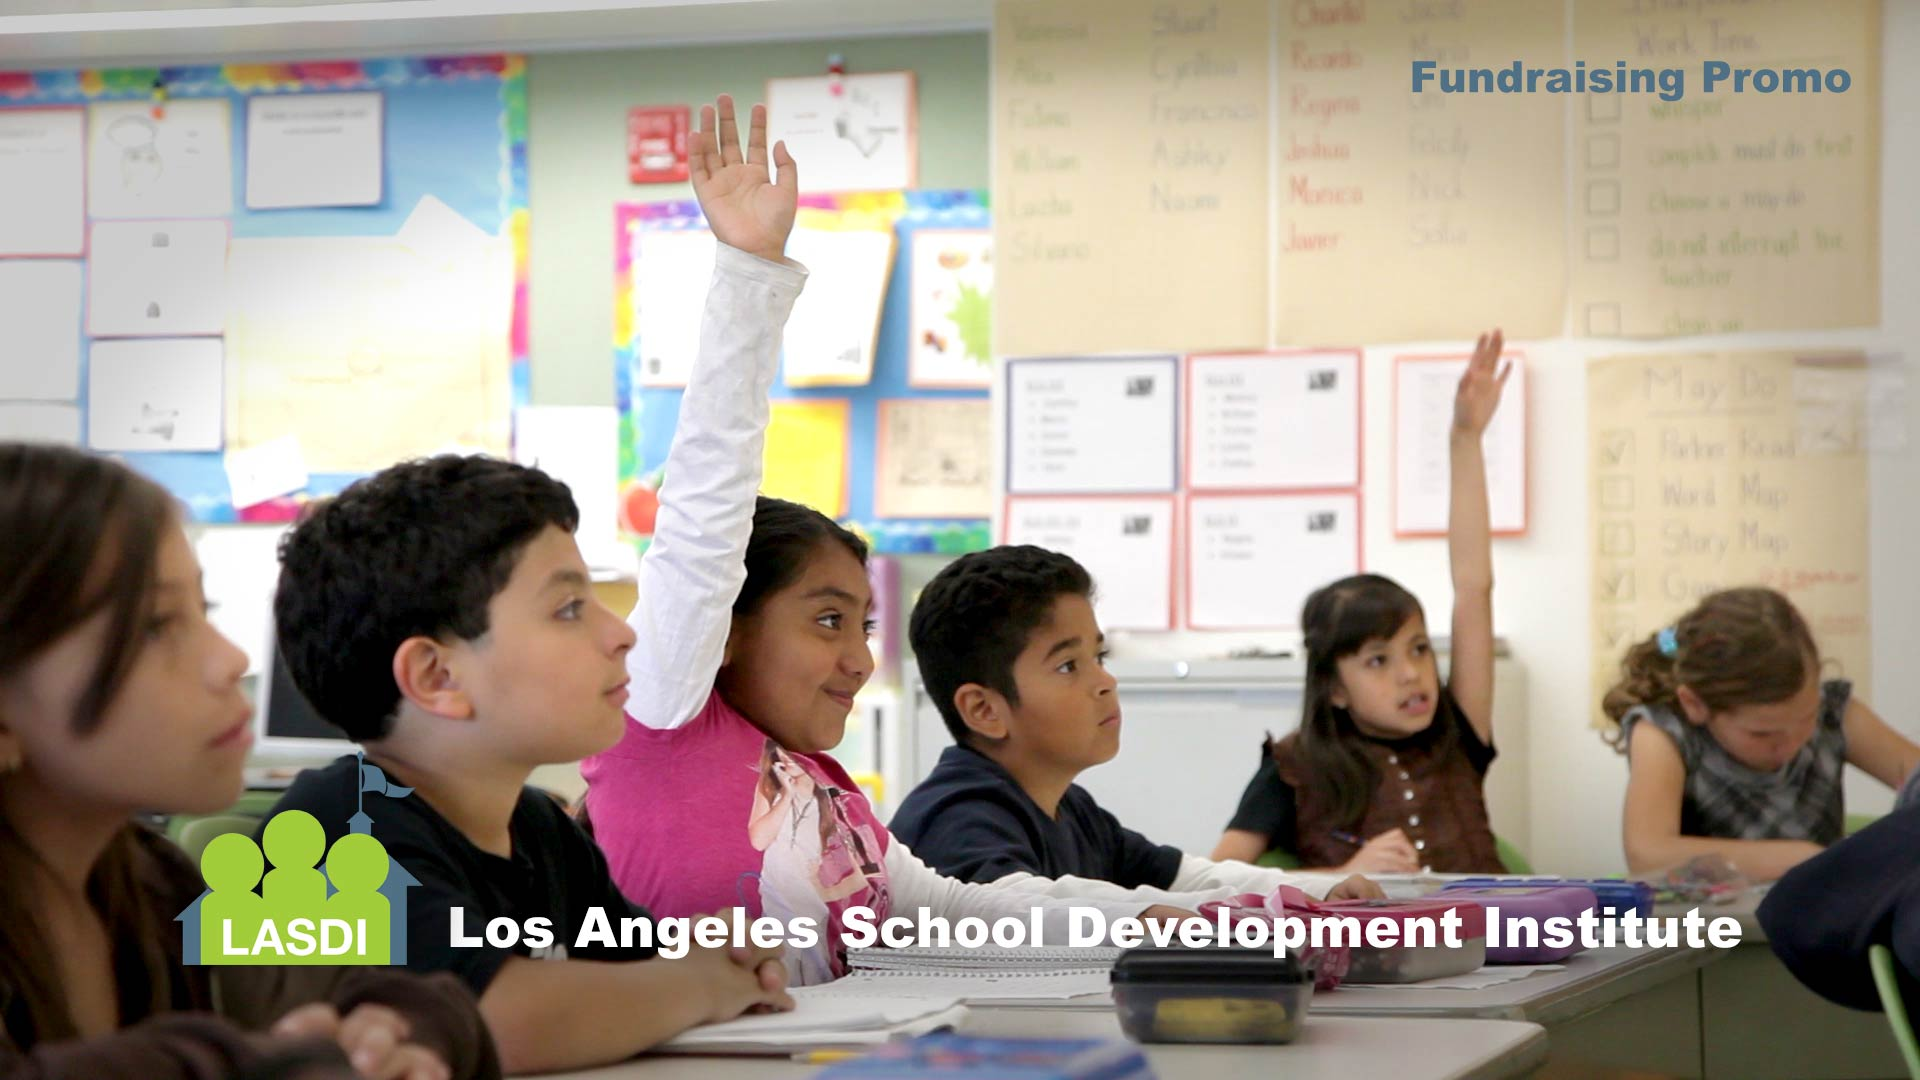 Los Angeles School Development Institute